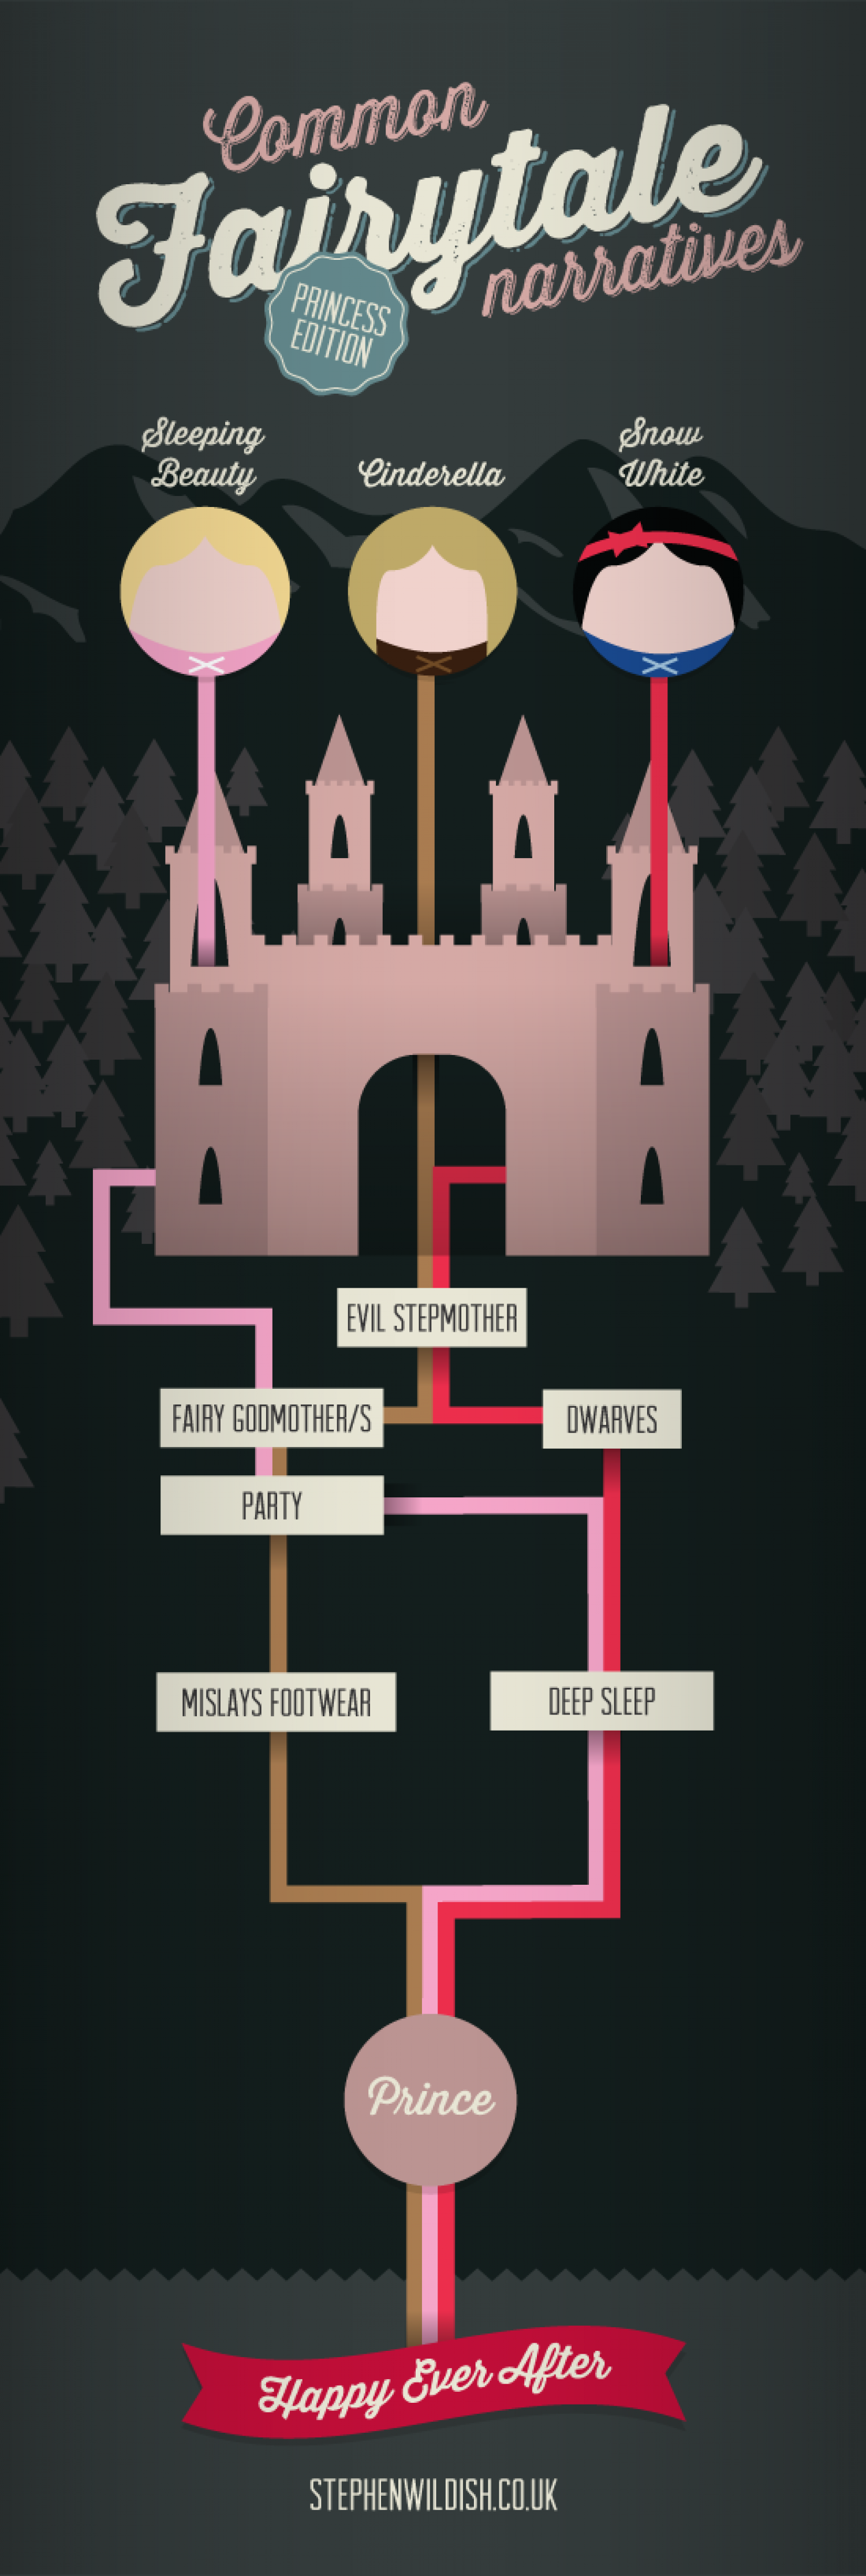 Common Fairytale Narratives - Princess edition Infographic